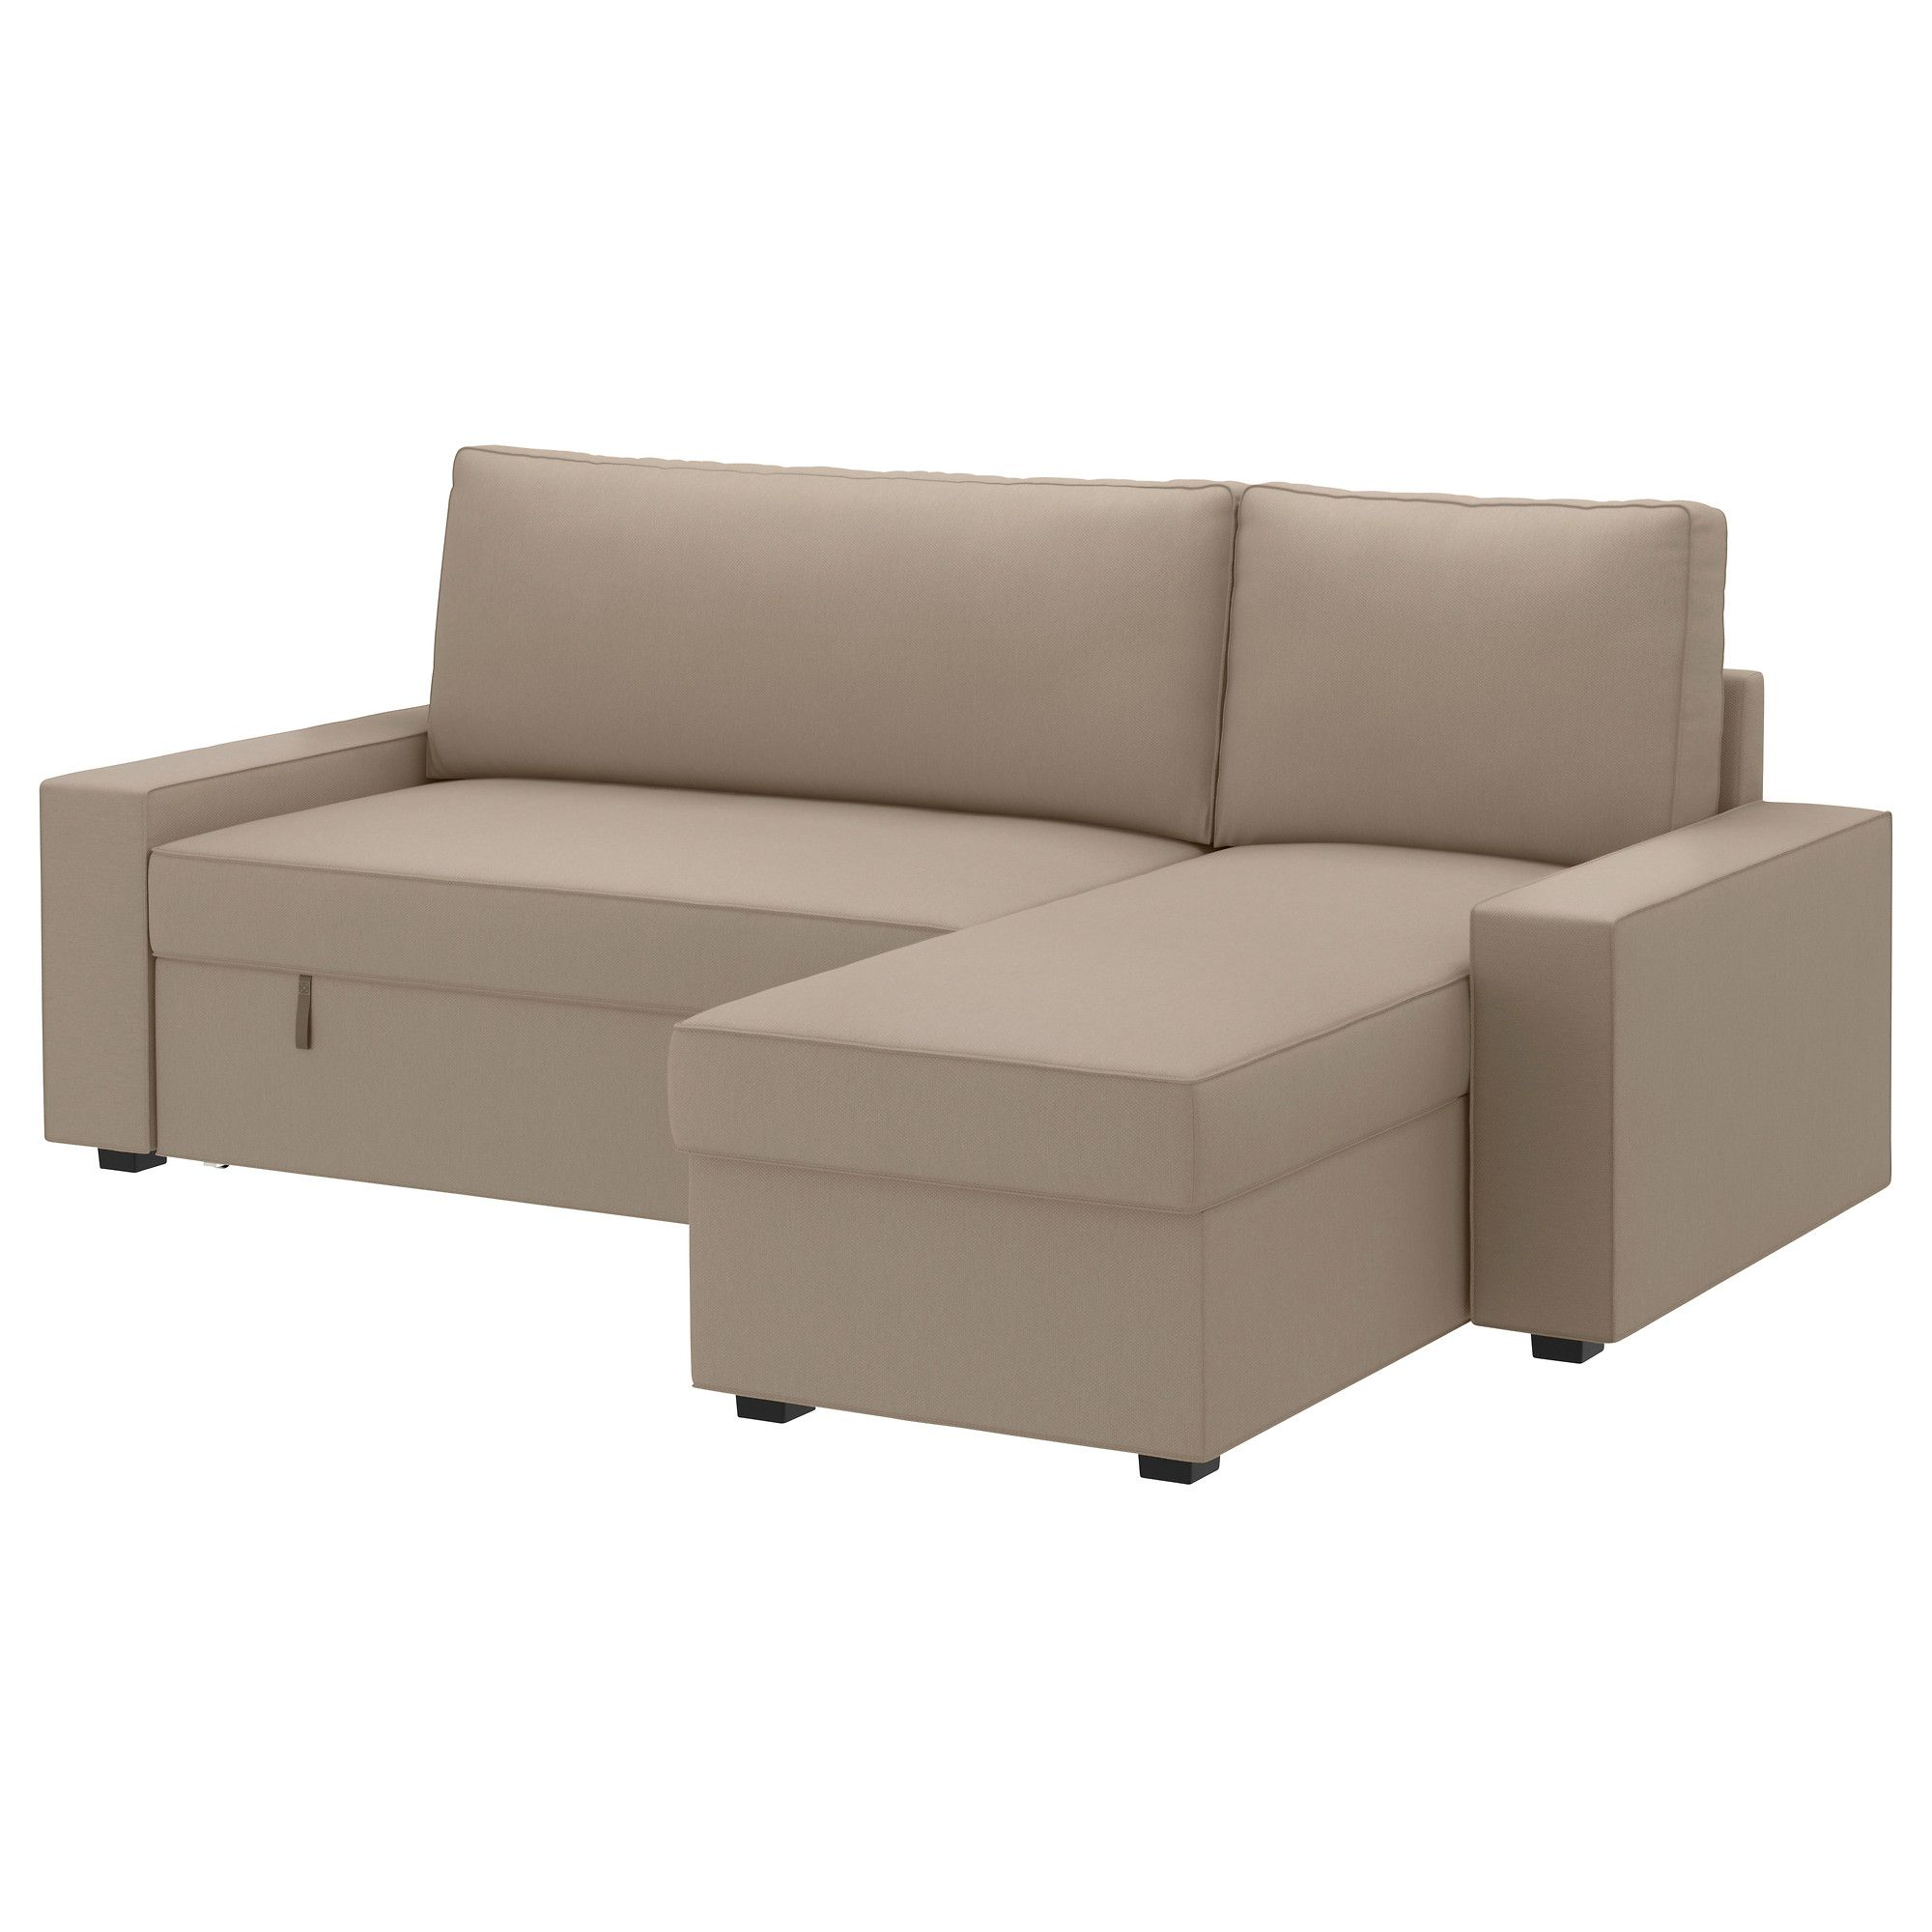 Gorgeous Small Sectional Sleeper Sofa With Chaise